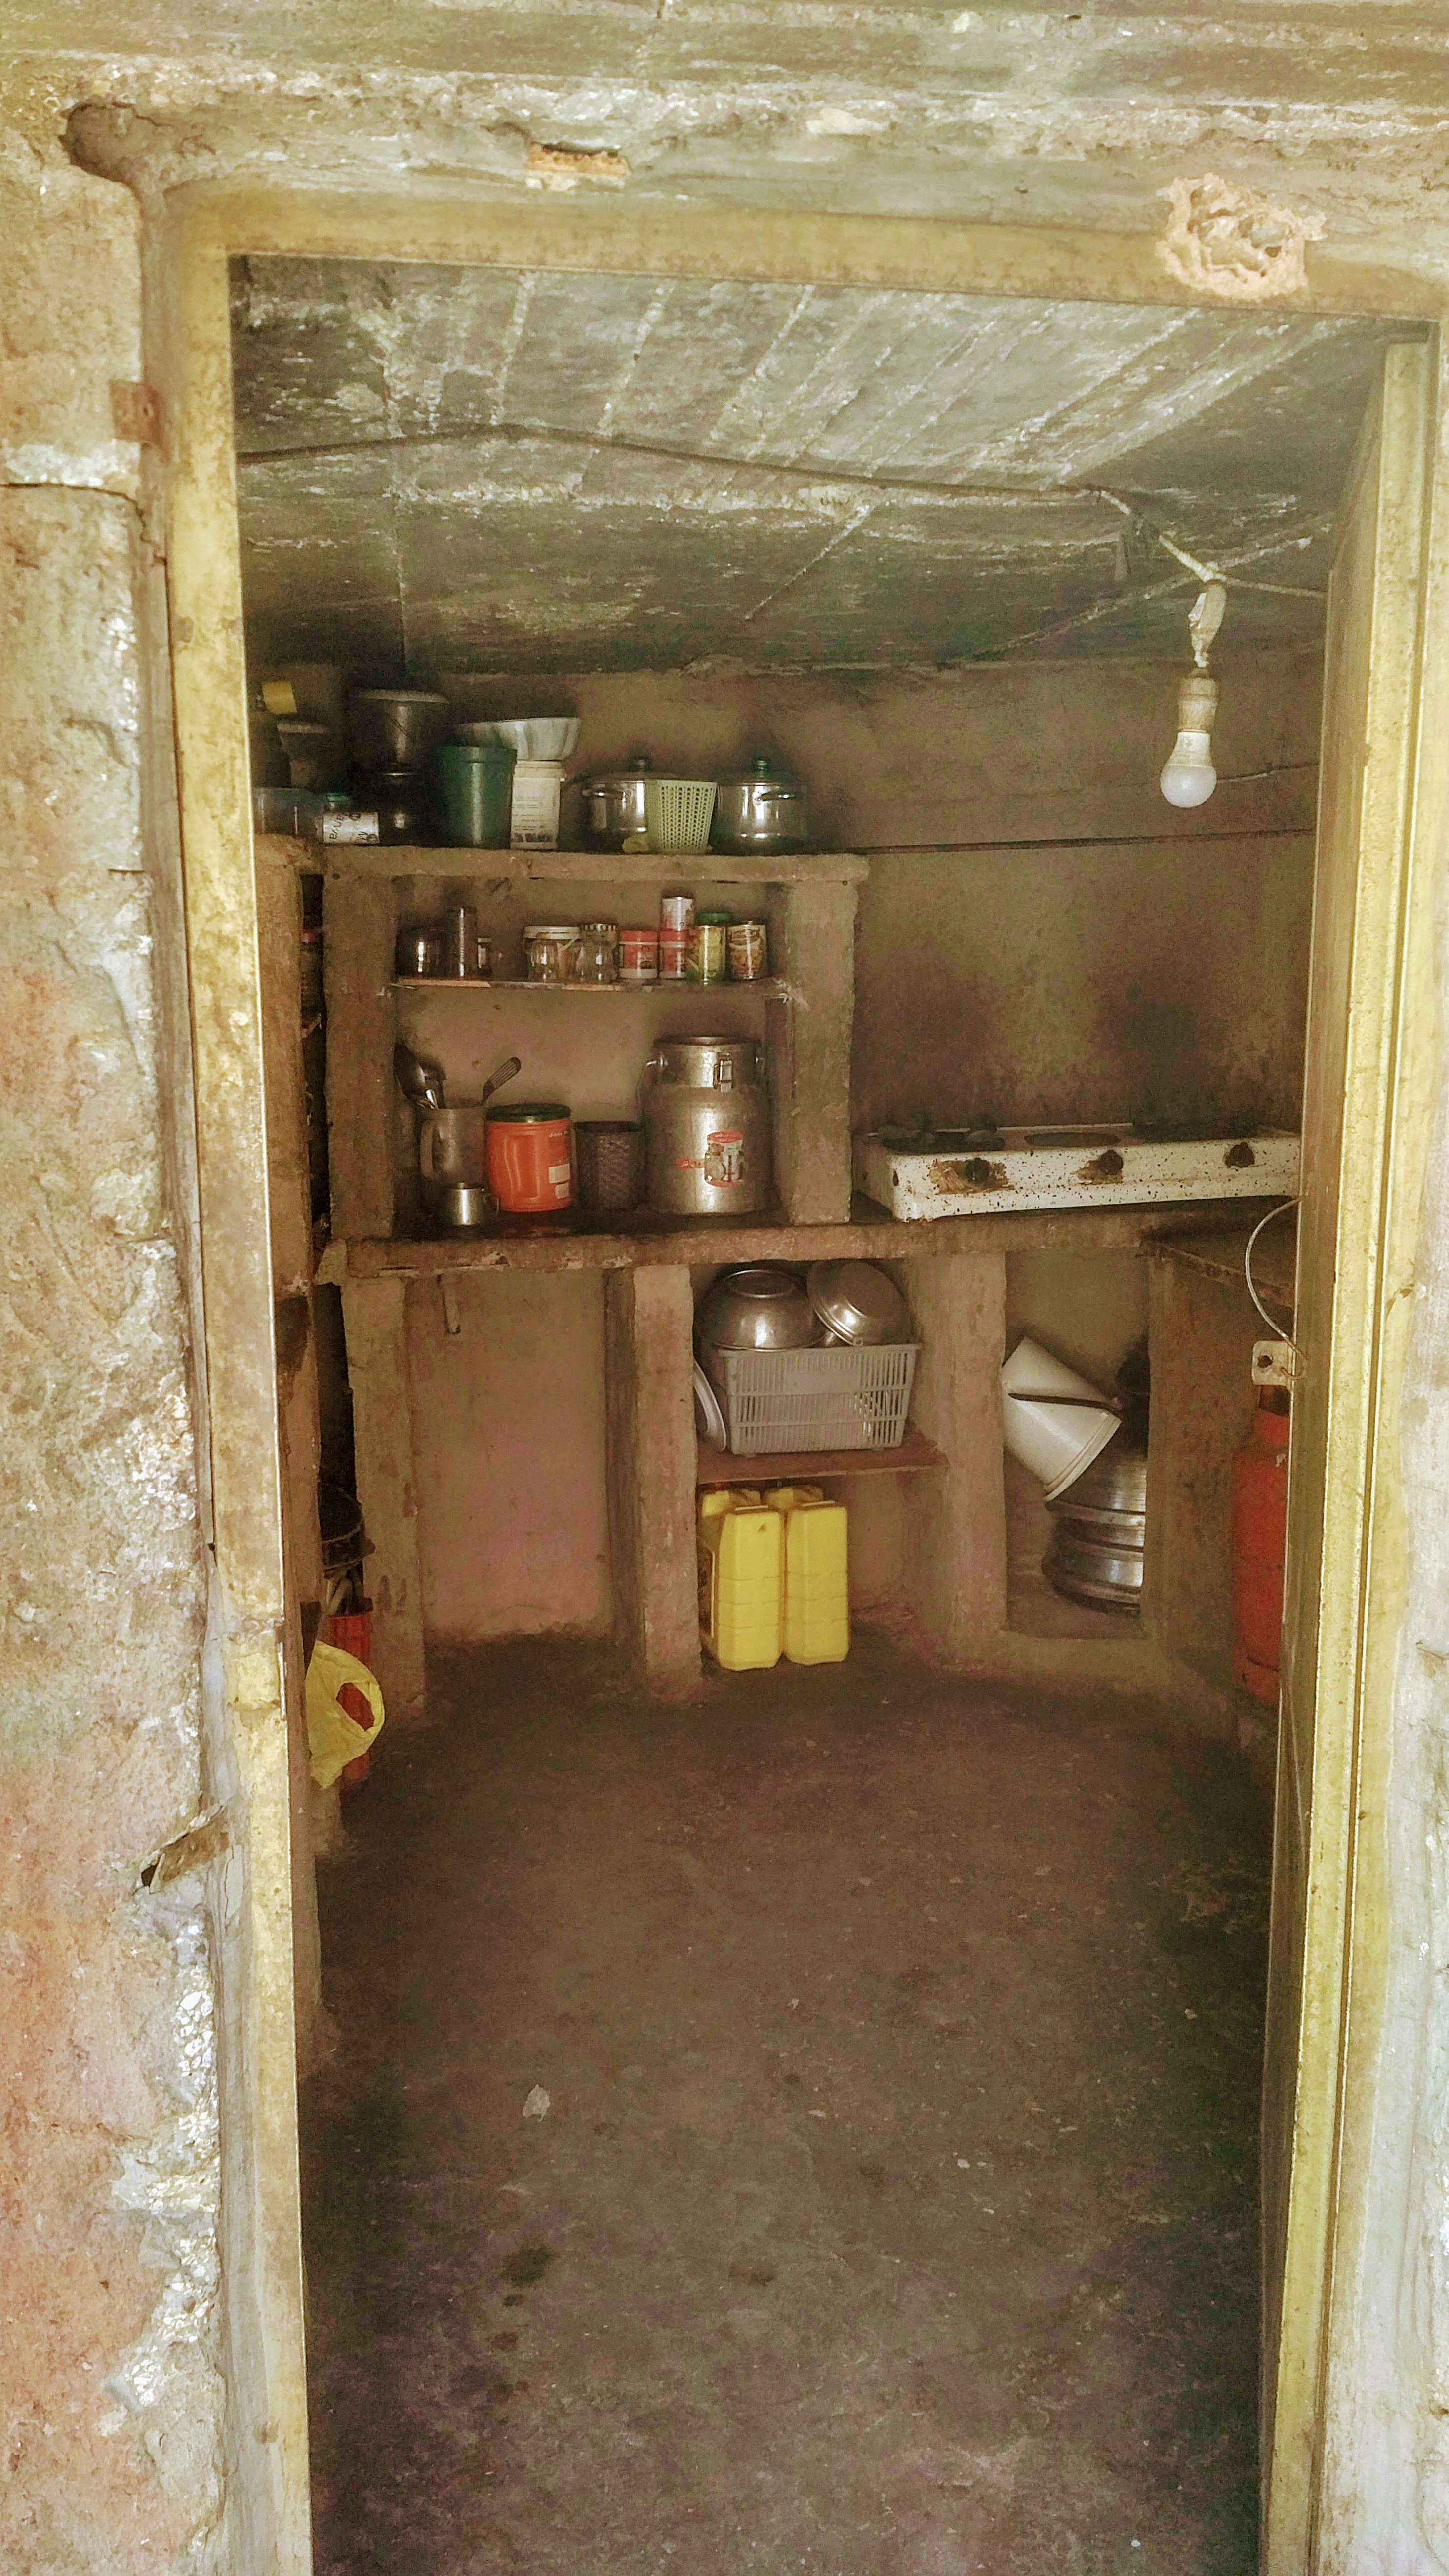 Kitchen in cave